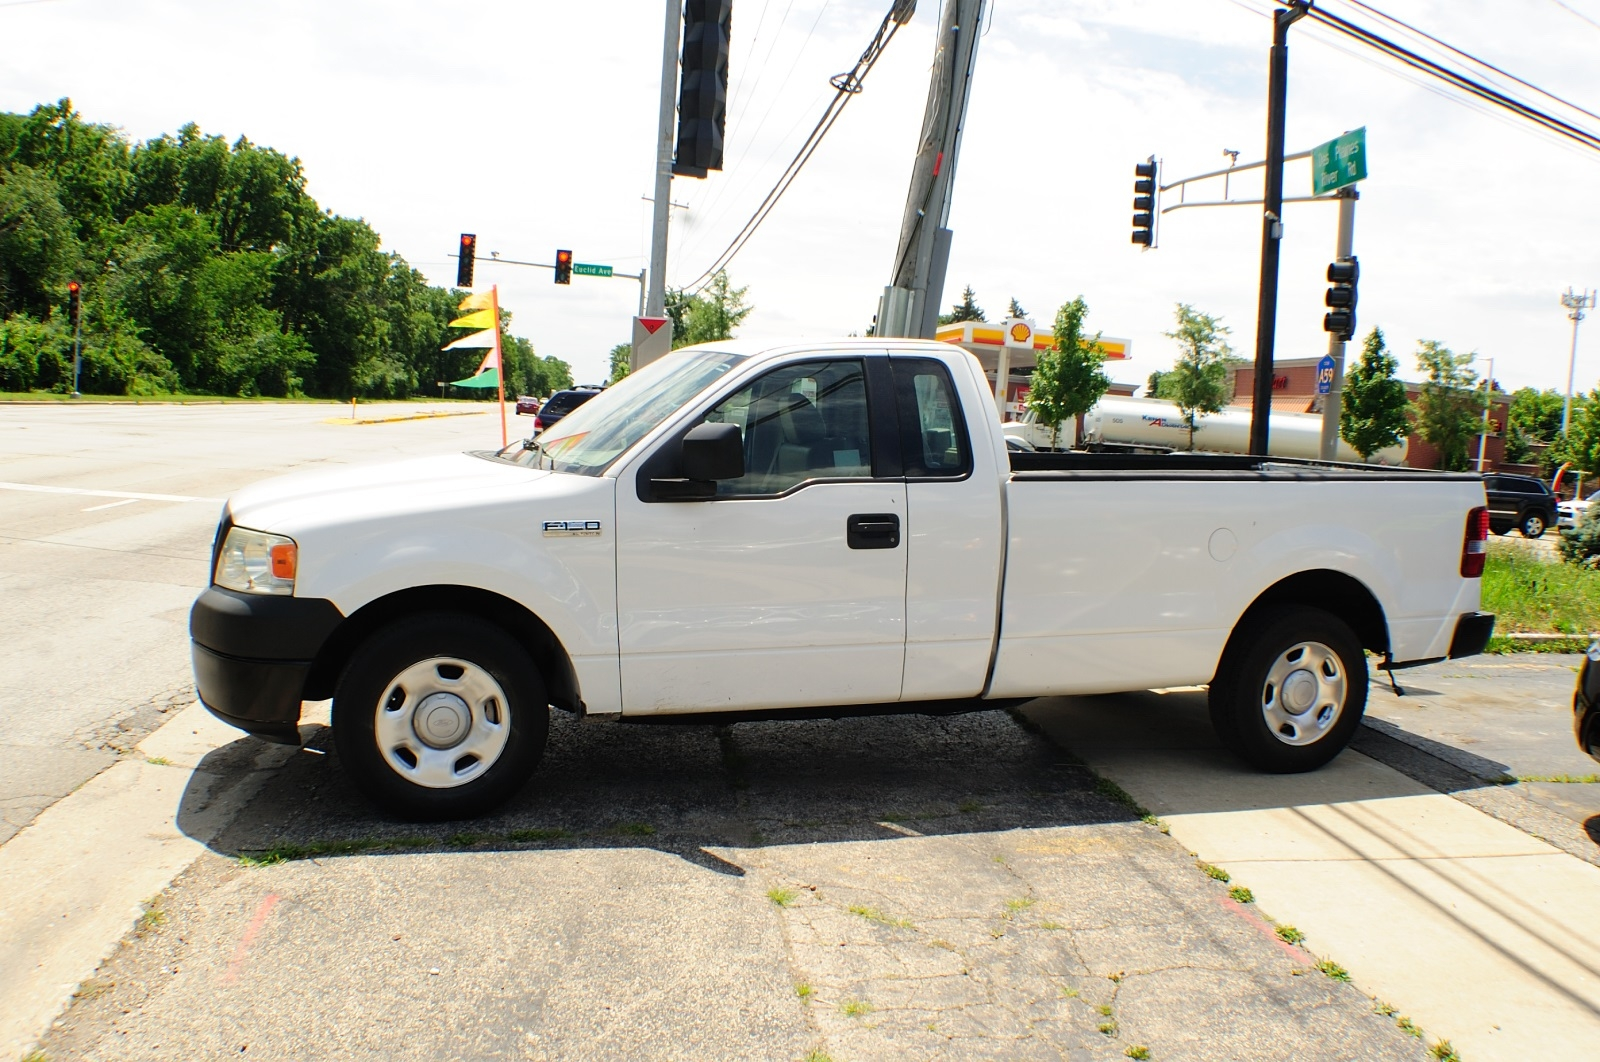 2006 ford f150 white ext cab 4x2 used pickup truck. Black Bedroom Furniture Sets. Home Design Ideas